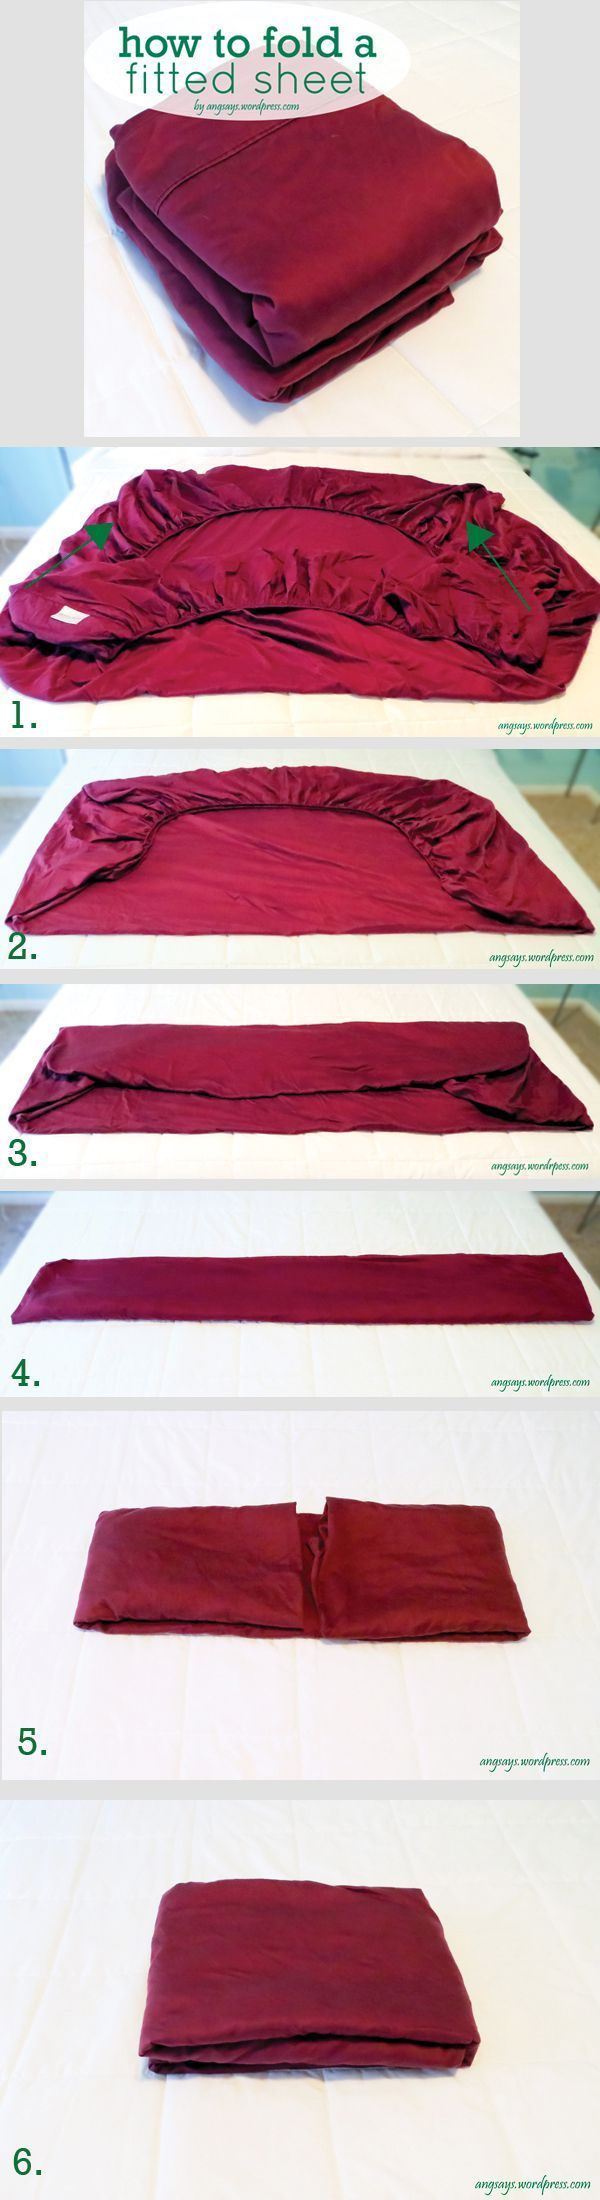 visit www.livingrichwithcoupons.com to find out how to fold a fitted sheet, how to fold tshirts, how to fold towels and much more